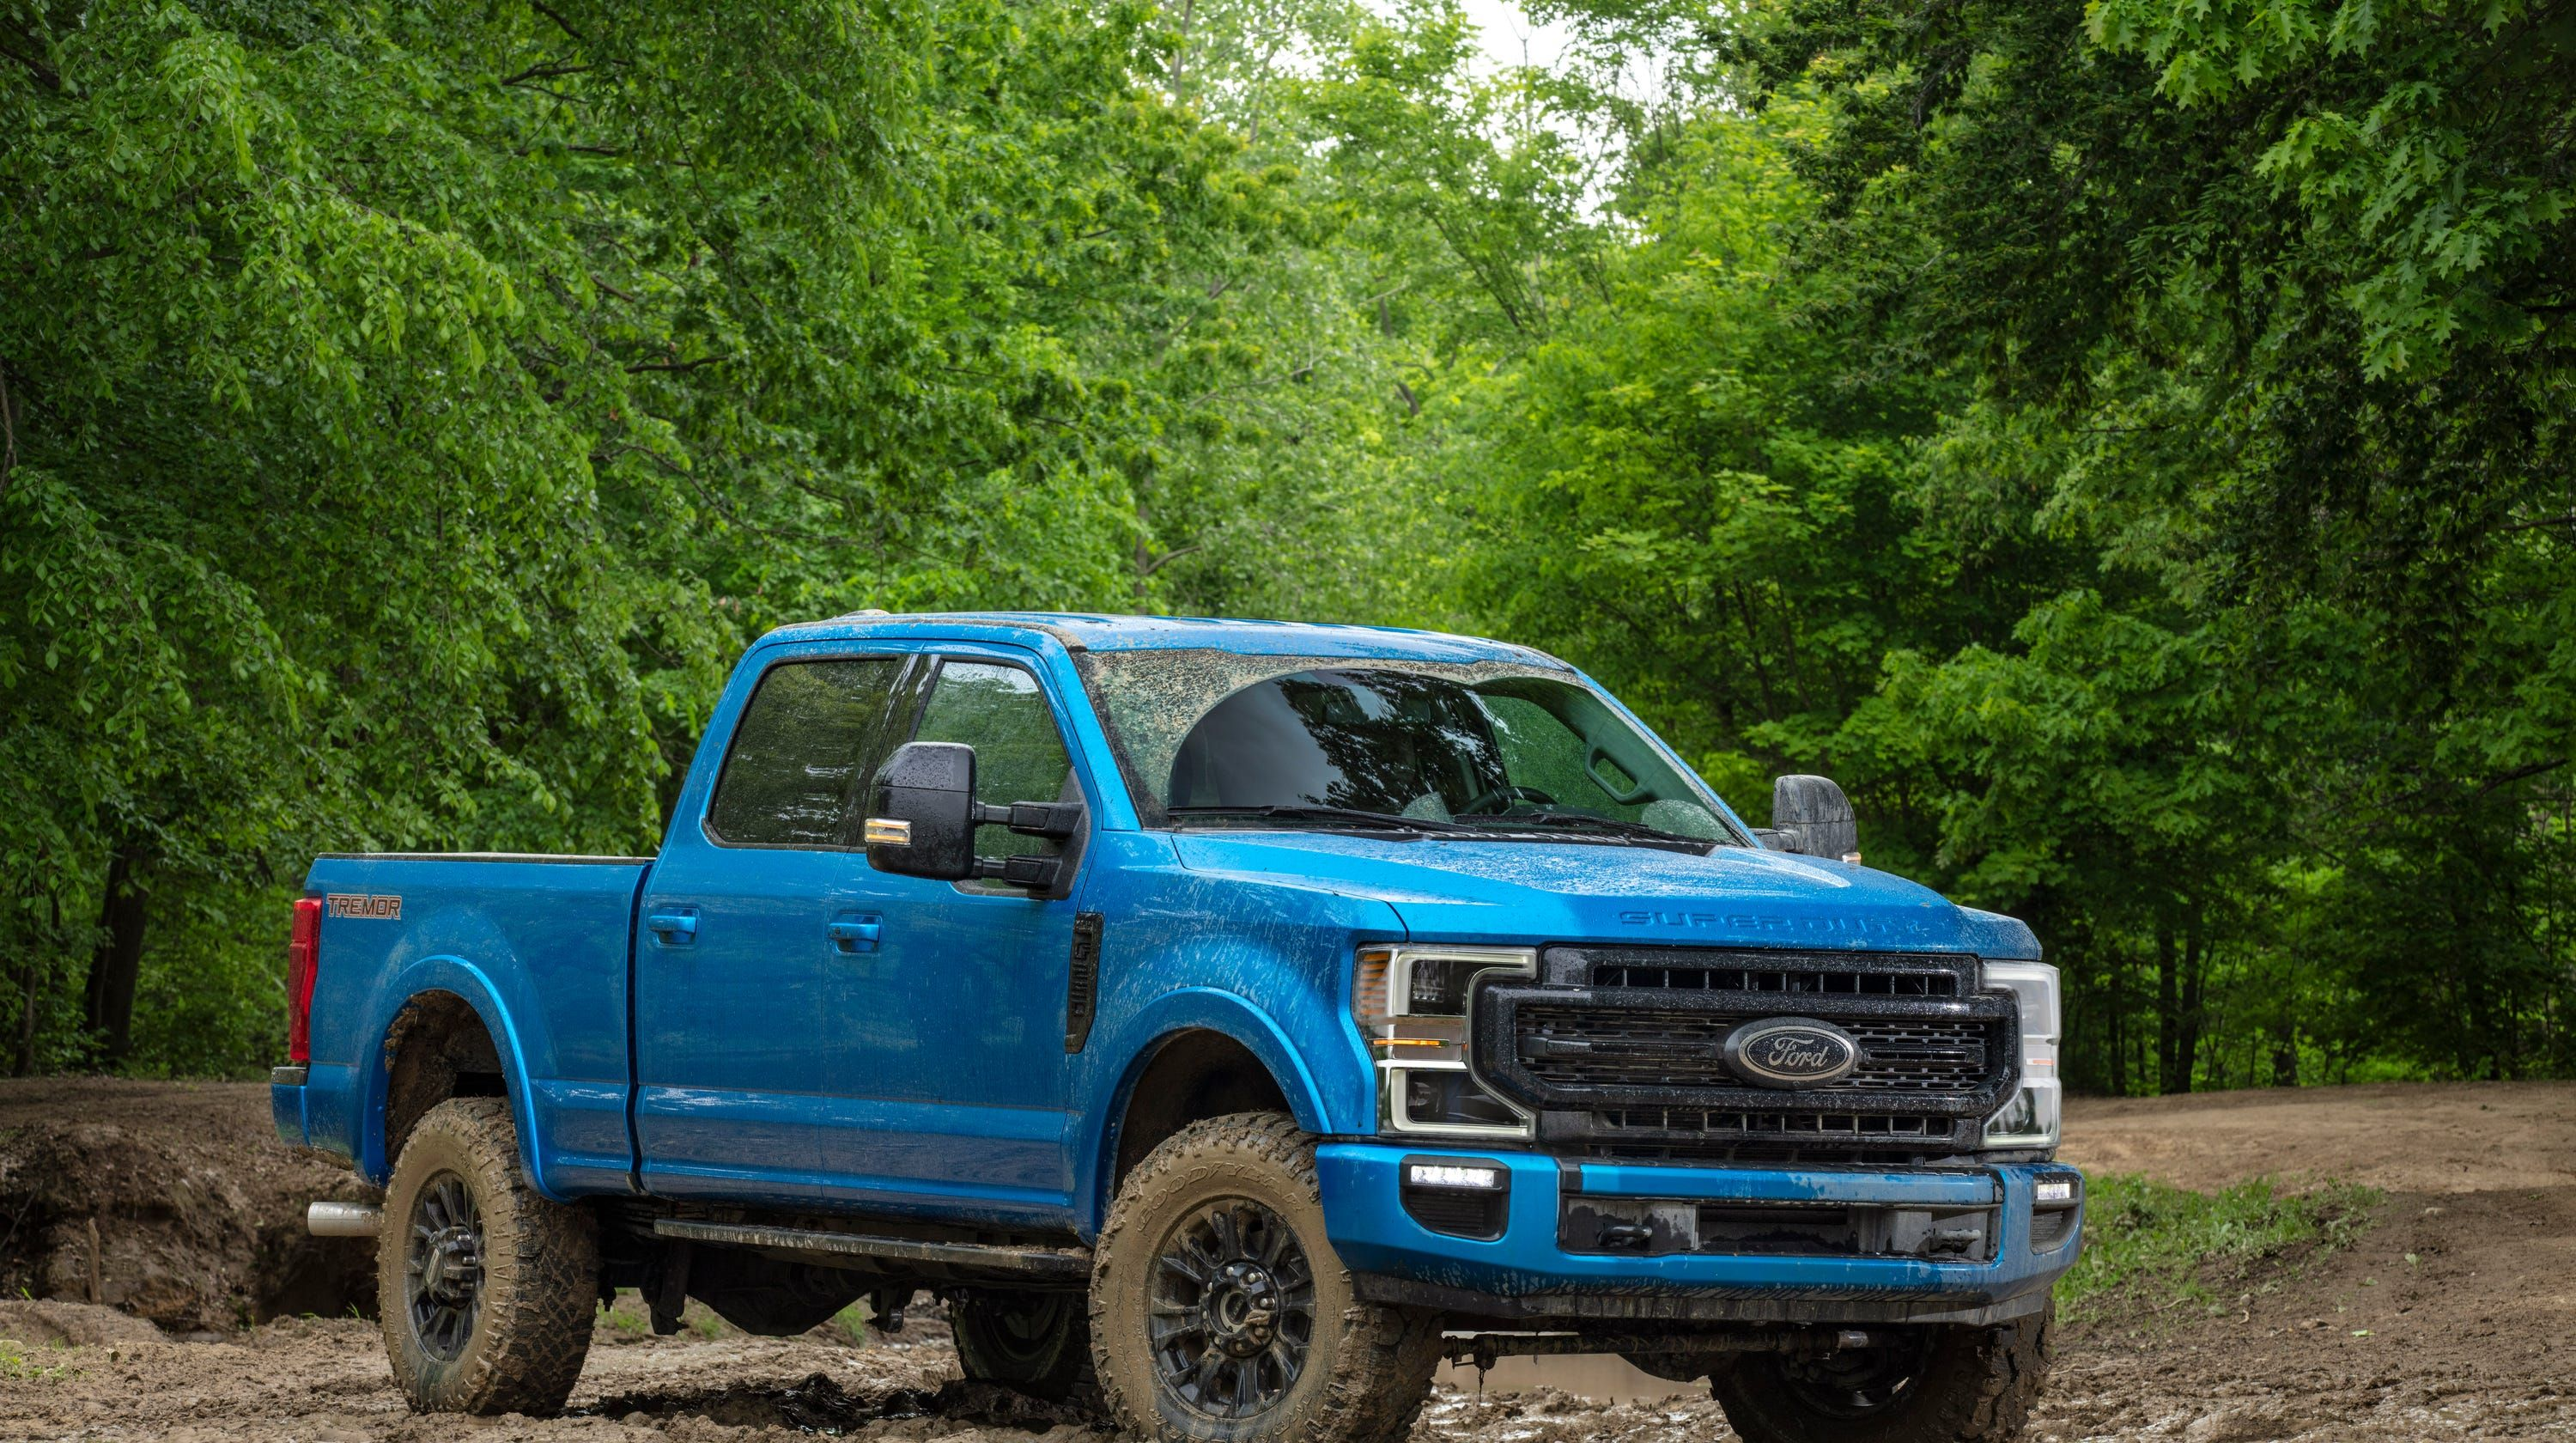 Ford F Series Super Duty Pickup Truck Gets Tremor Off Road Package